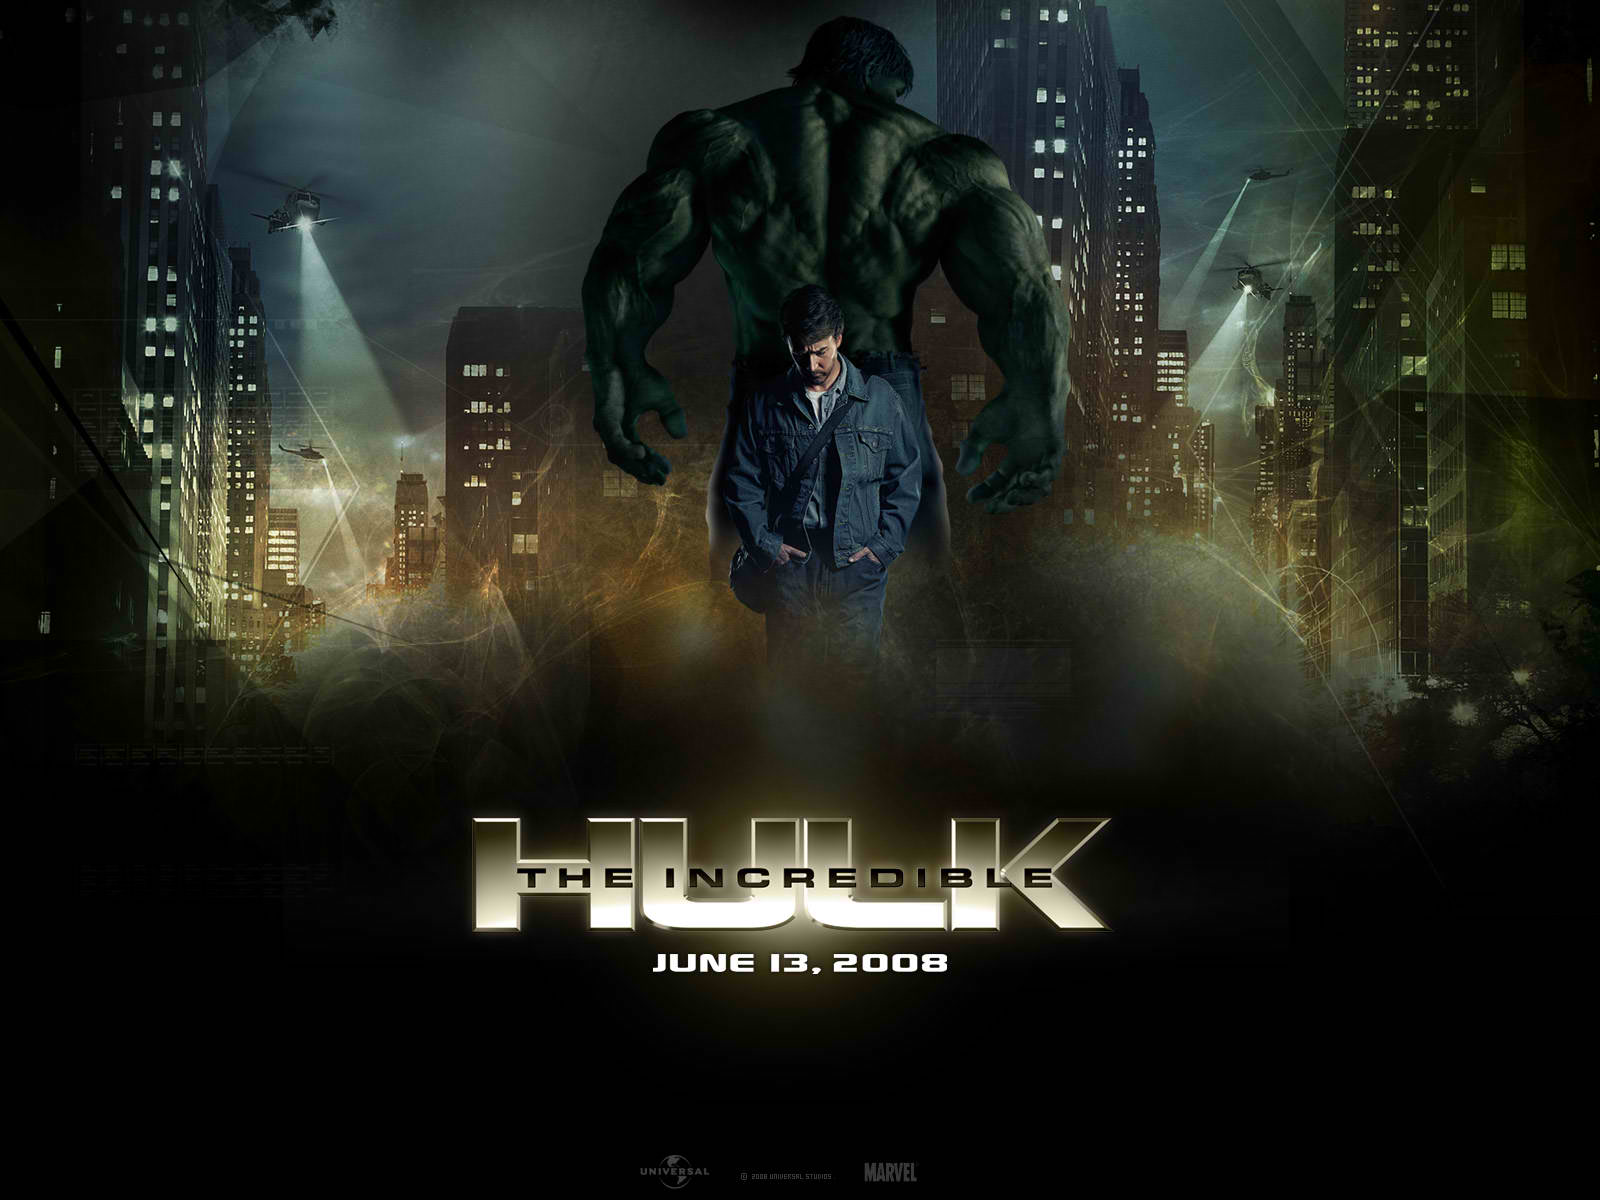 http://2.bp.blogspot.com/-wlfZU-GSNsQ/UBObCRb33HI/AAAAAAAABec/1JP86Fw3wS0/s1600/Edward_Norton_in_The_Incredible_Hulk_Wallpaper_8_800.jpg